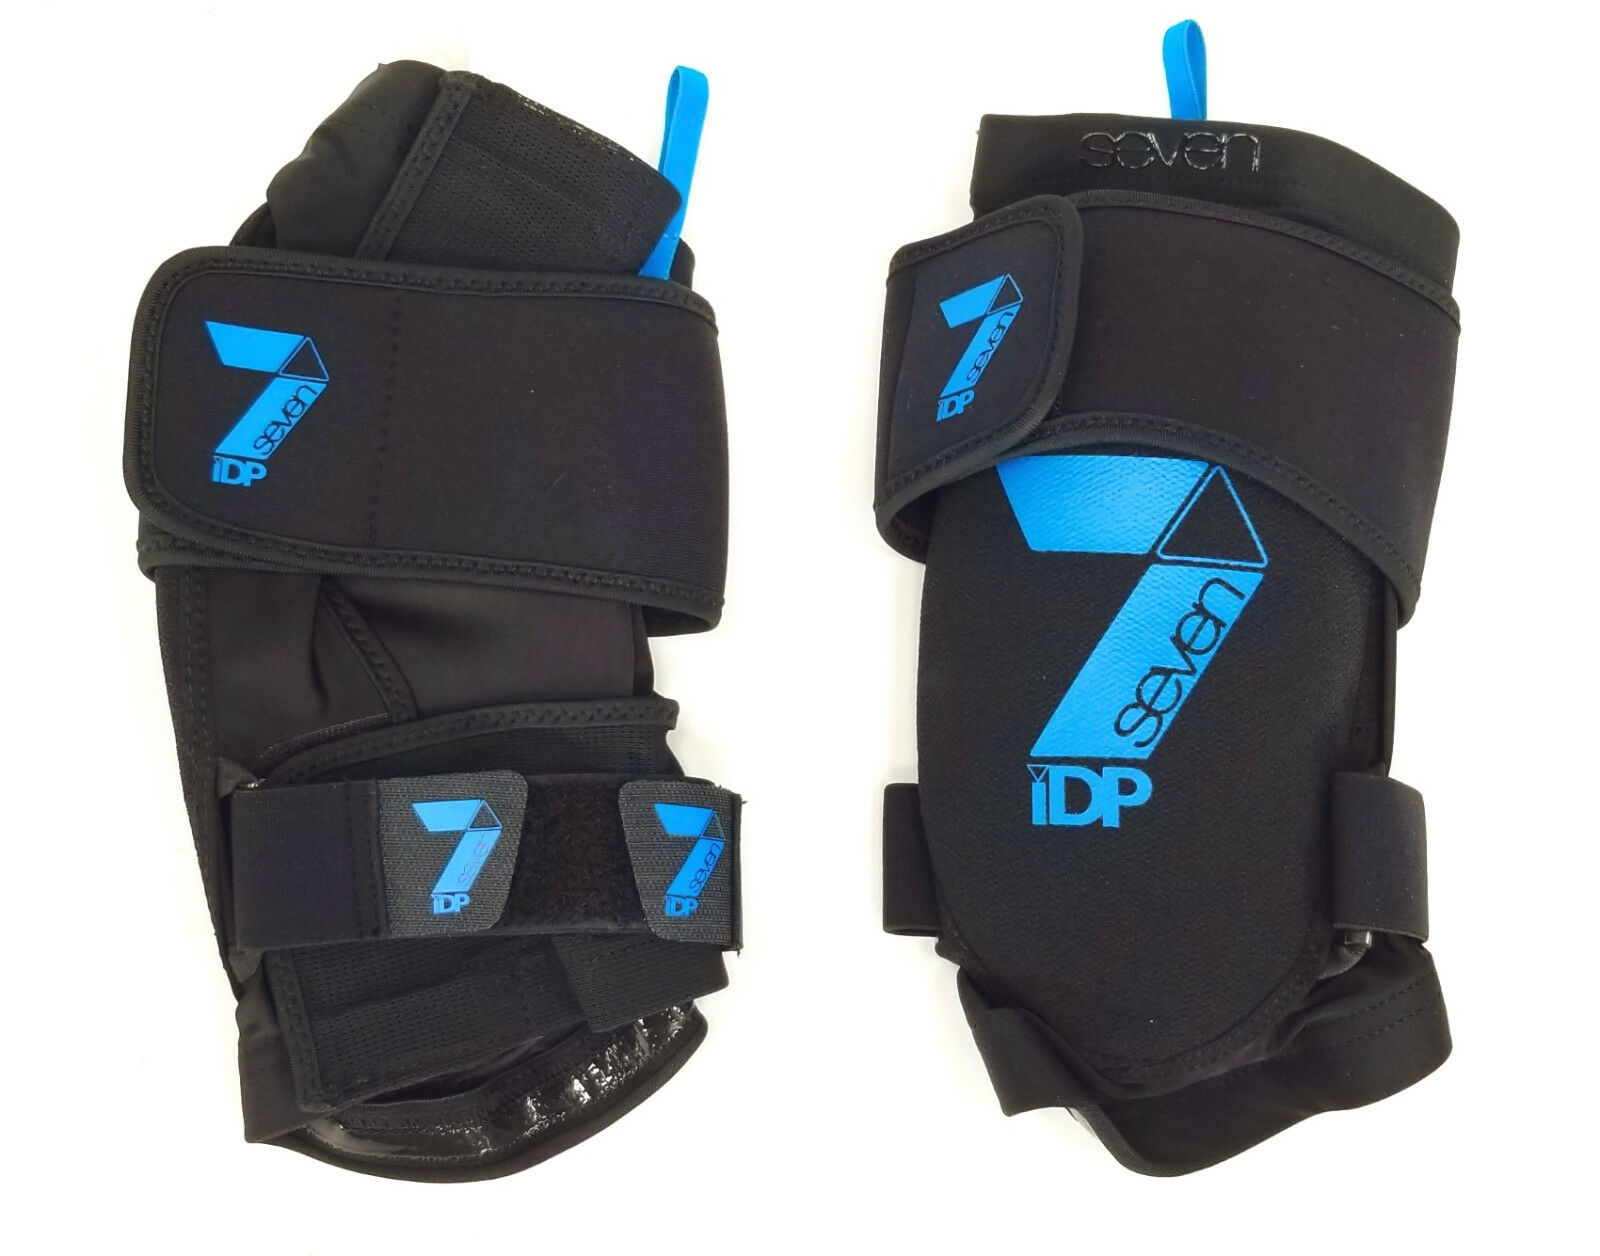 7 Seven IDP Knee Pads Guards Transition Wrap